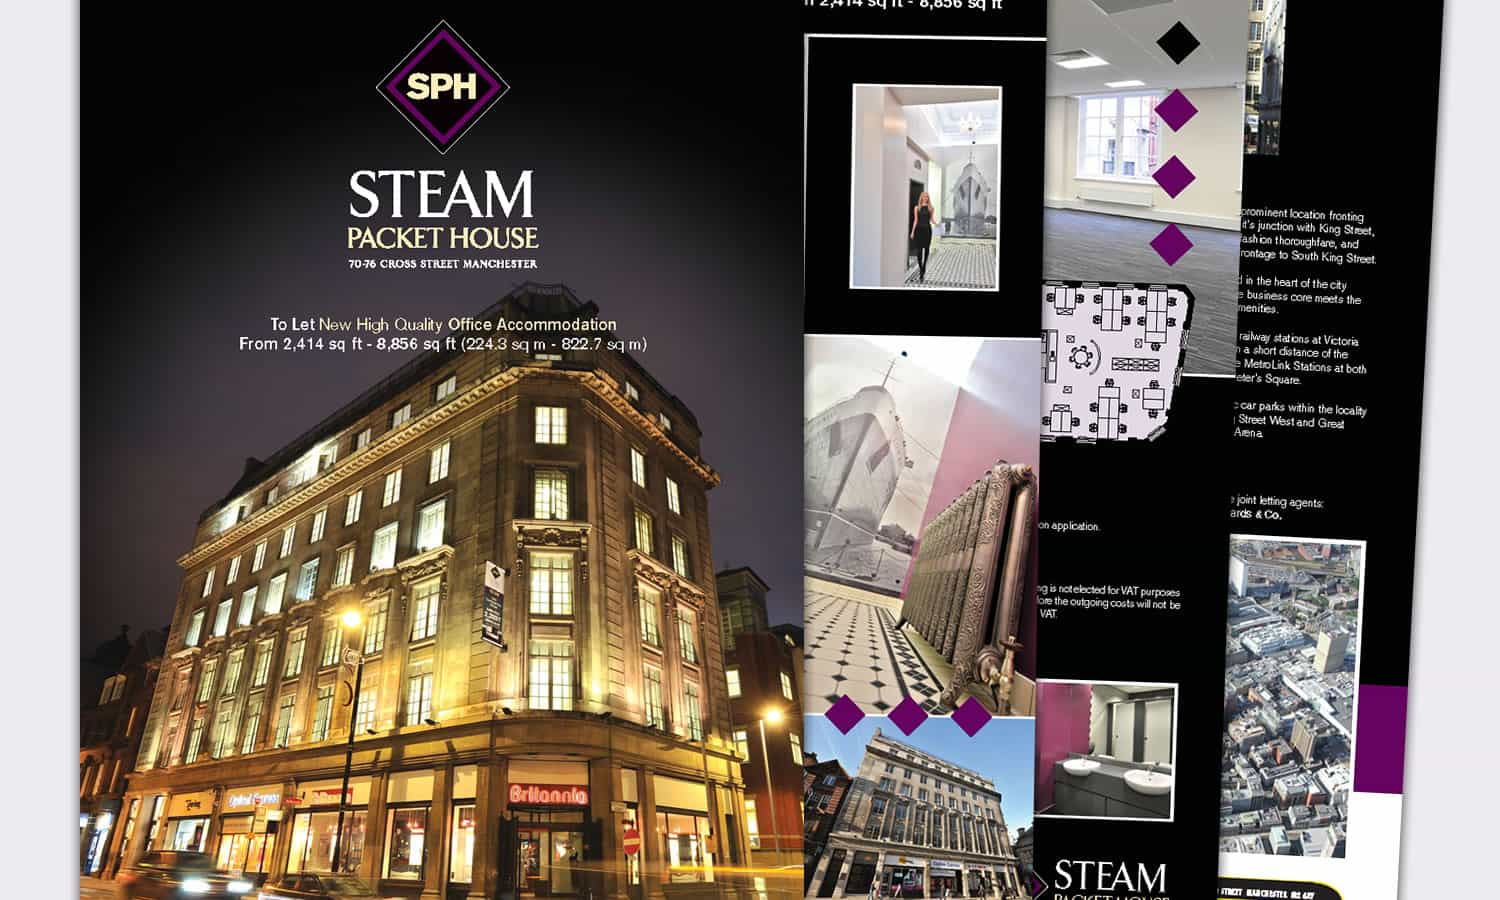 Steam Packet House